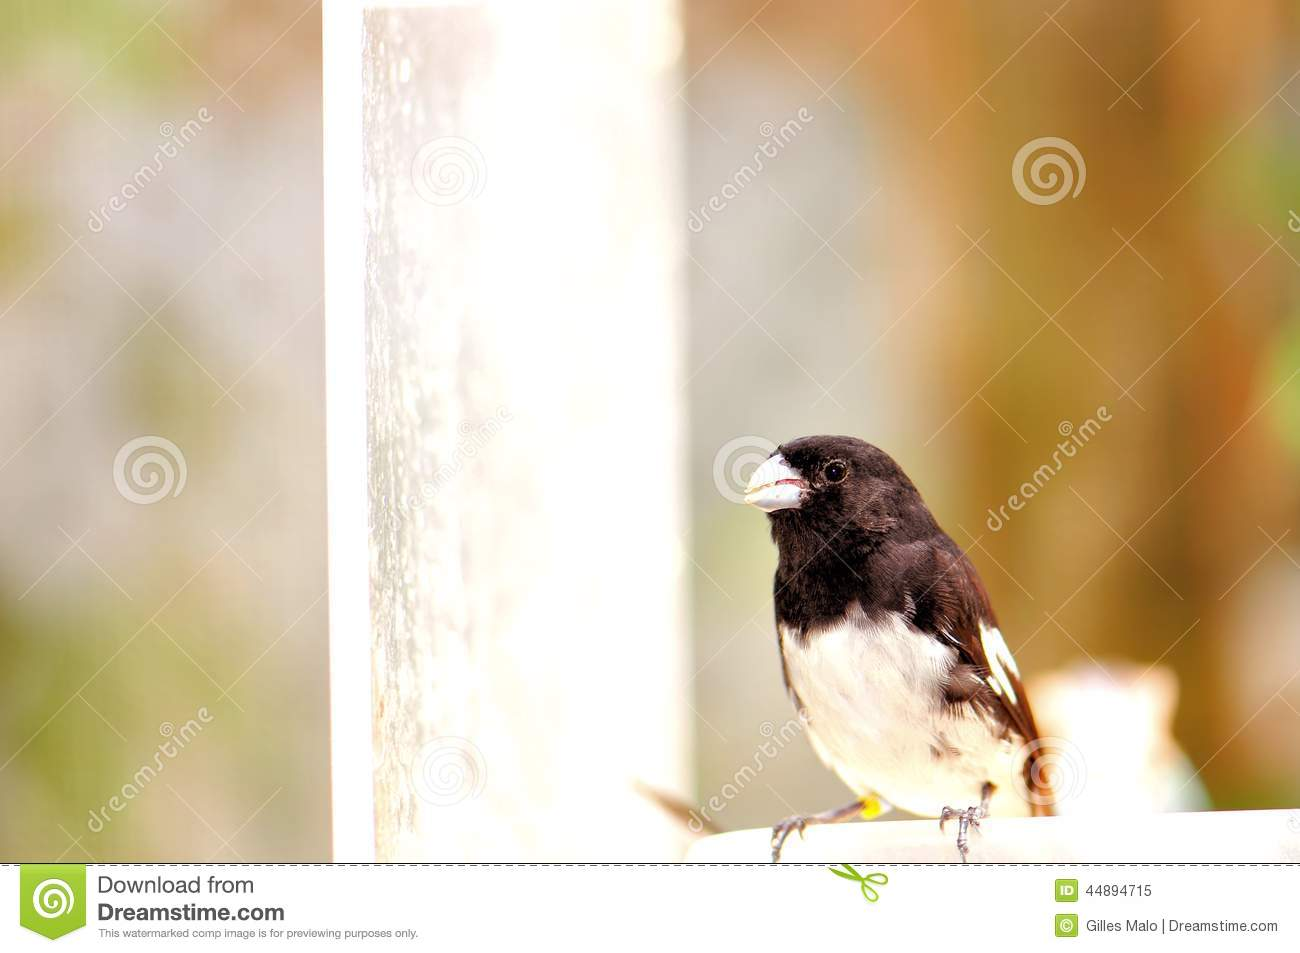 Black And White Finch Bird On Food Bowl, Florida Aviary Stock Image ...